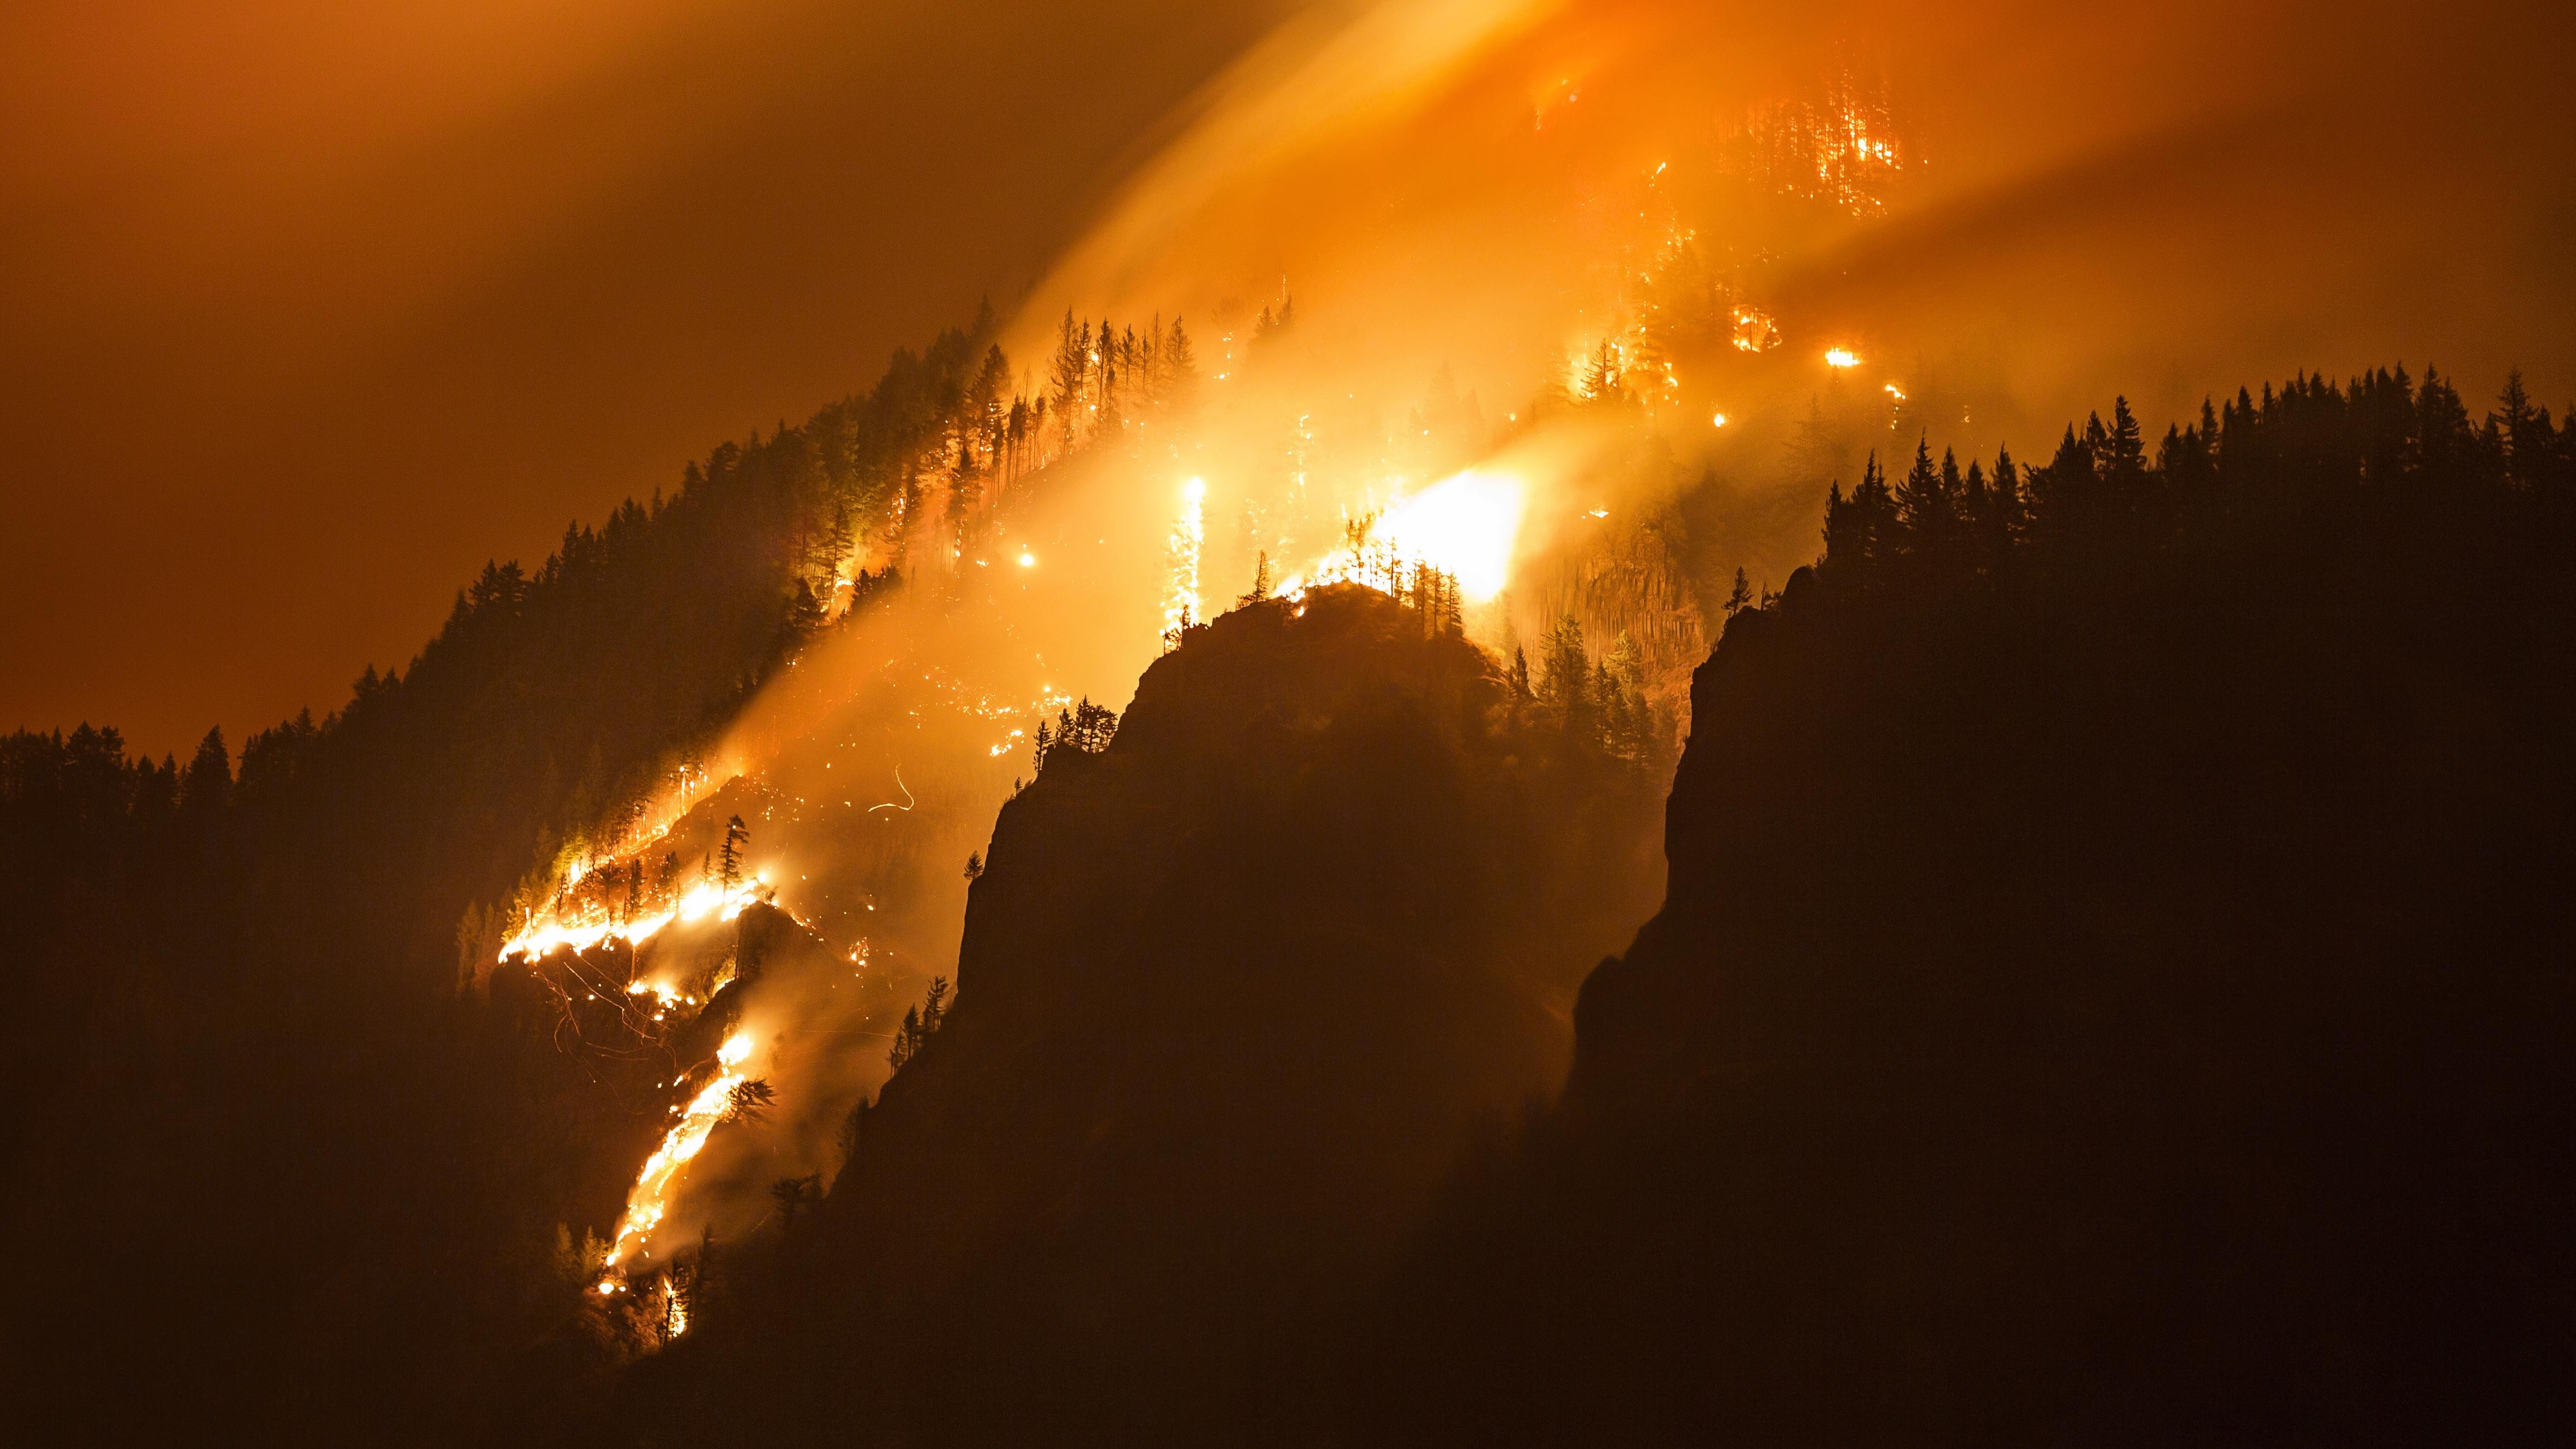 Wallpaper columbia gorge forest fire 4k nature 15665 your resolution 1024x1024 voltagebd Gallery